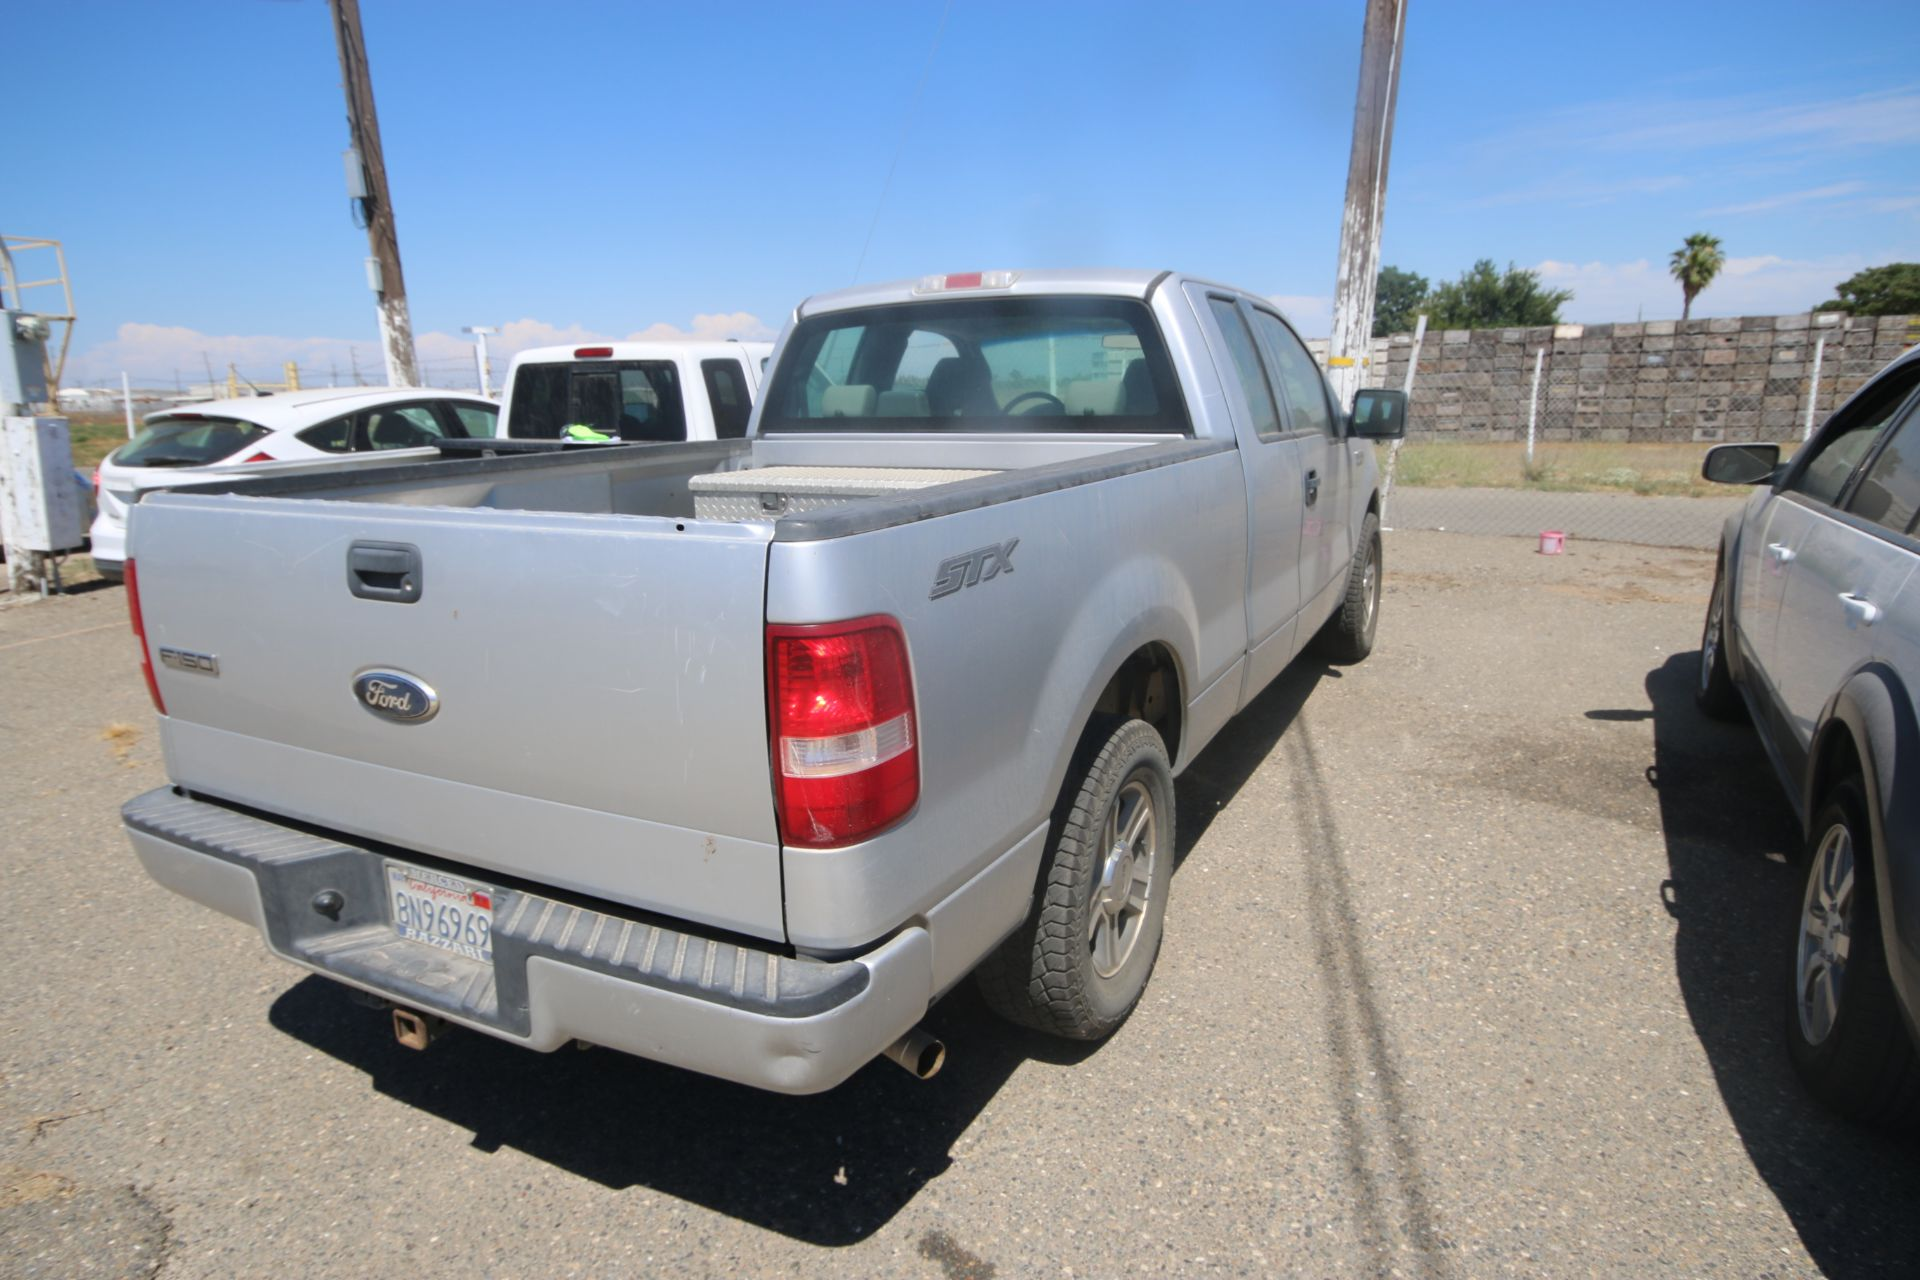 2008 Ford F150 Pick Up Truck, VIN #: 1FTRX12W7BFB9710, with 214,817 Miles, Started Up as of 06/24/ - Image 3 of 24